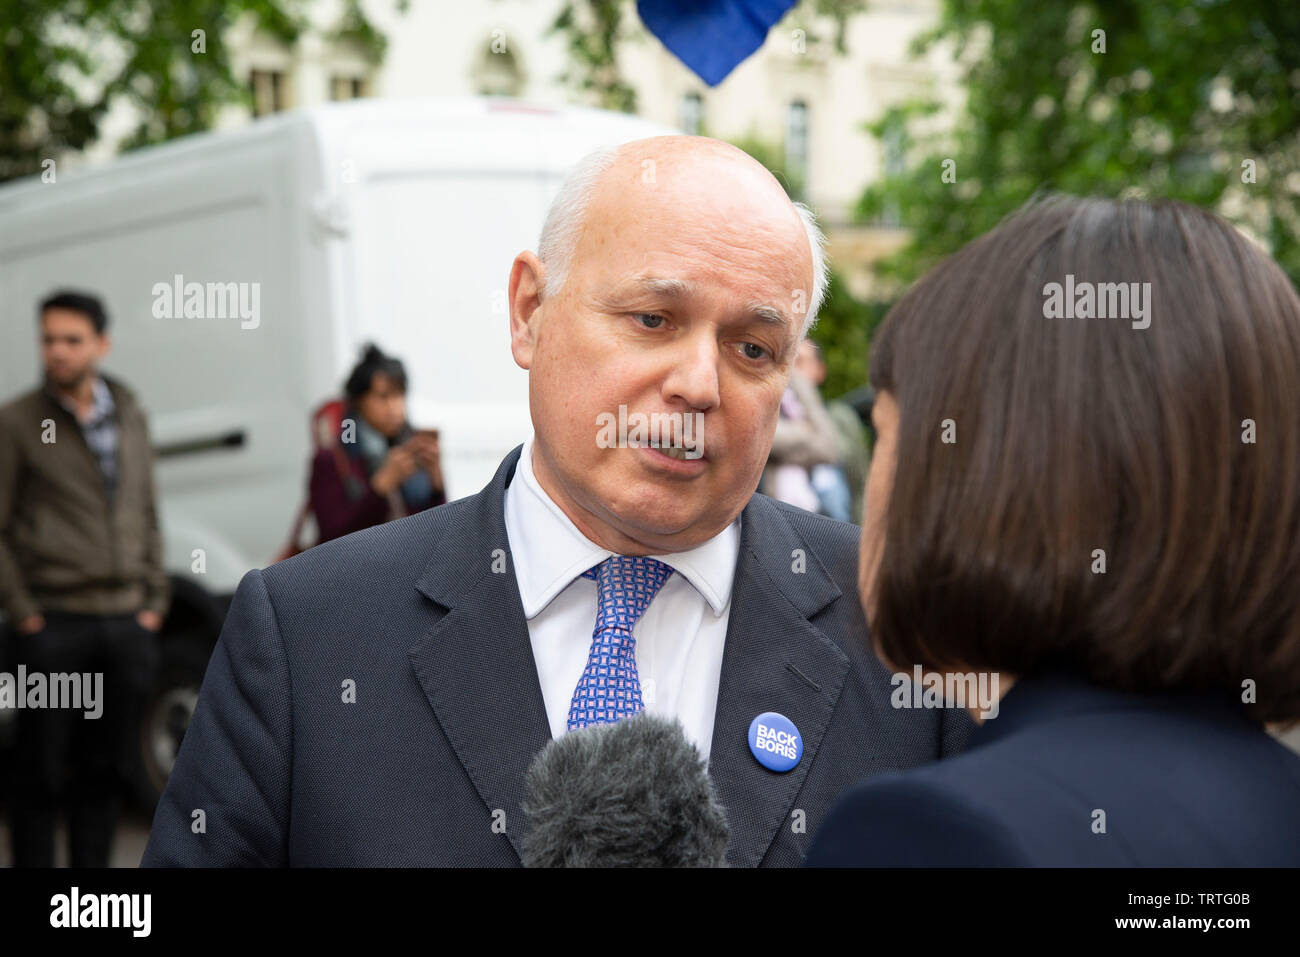 London, UK. 12th June, 2019. Ian Duncan - Smith MP speaks to media outside an event held by  Boris Johnson to launch his bid to be leader of the Conservative and Unionist Party and Prime Minister. Credit: Claire Doherty/Alamy Live News Stock Photo